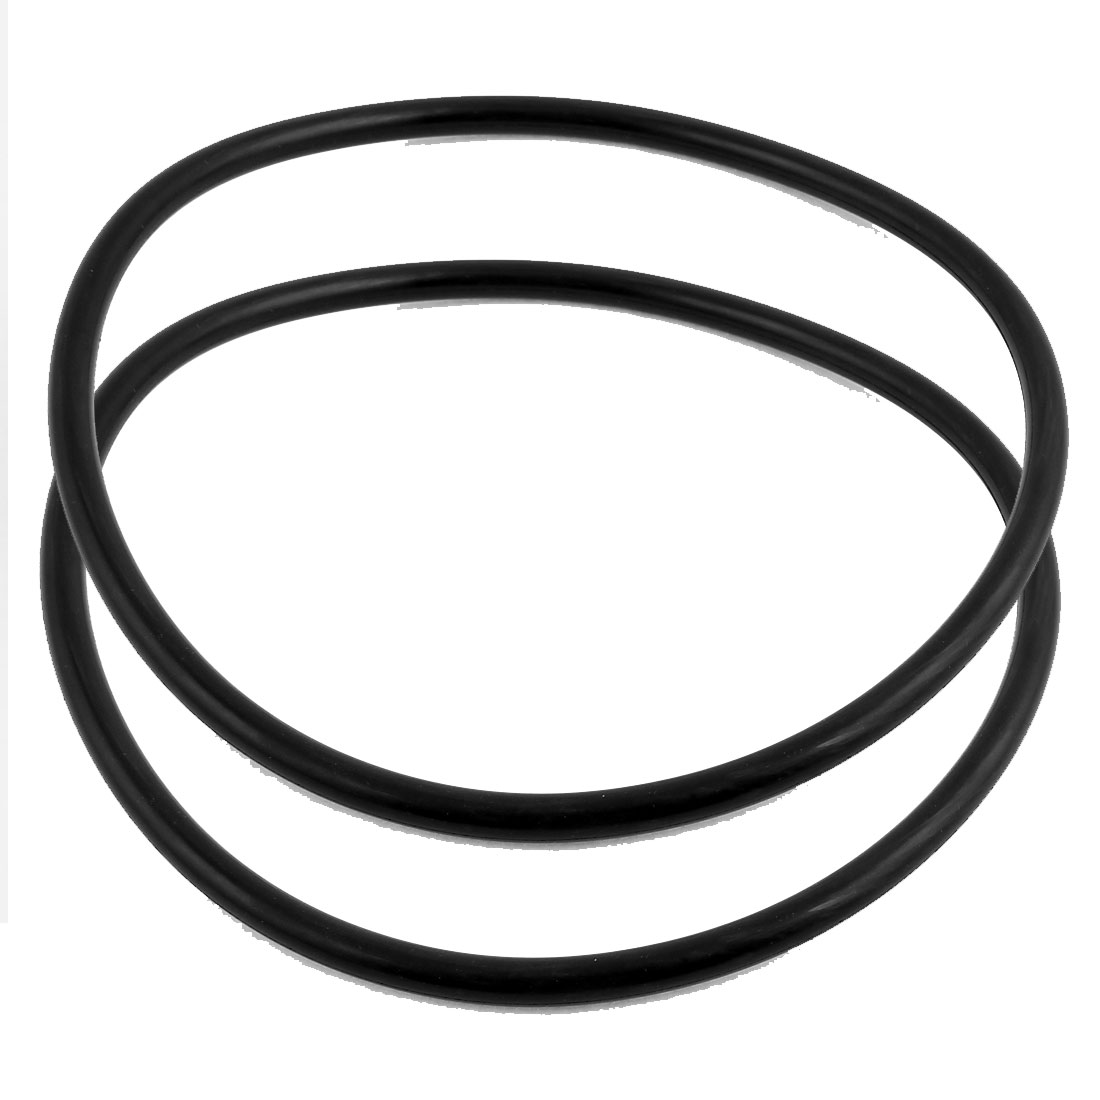 2Pcs Black Universal O-Ring 195mm x 8.6mm BUNA-N Material Oil Seal Washers Grommets